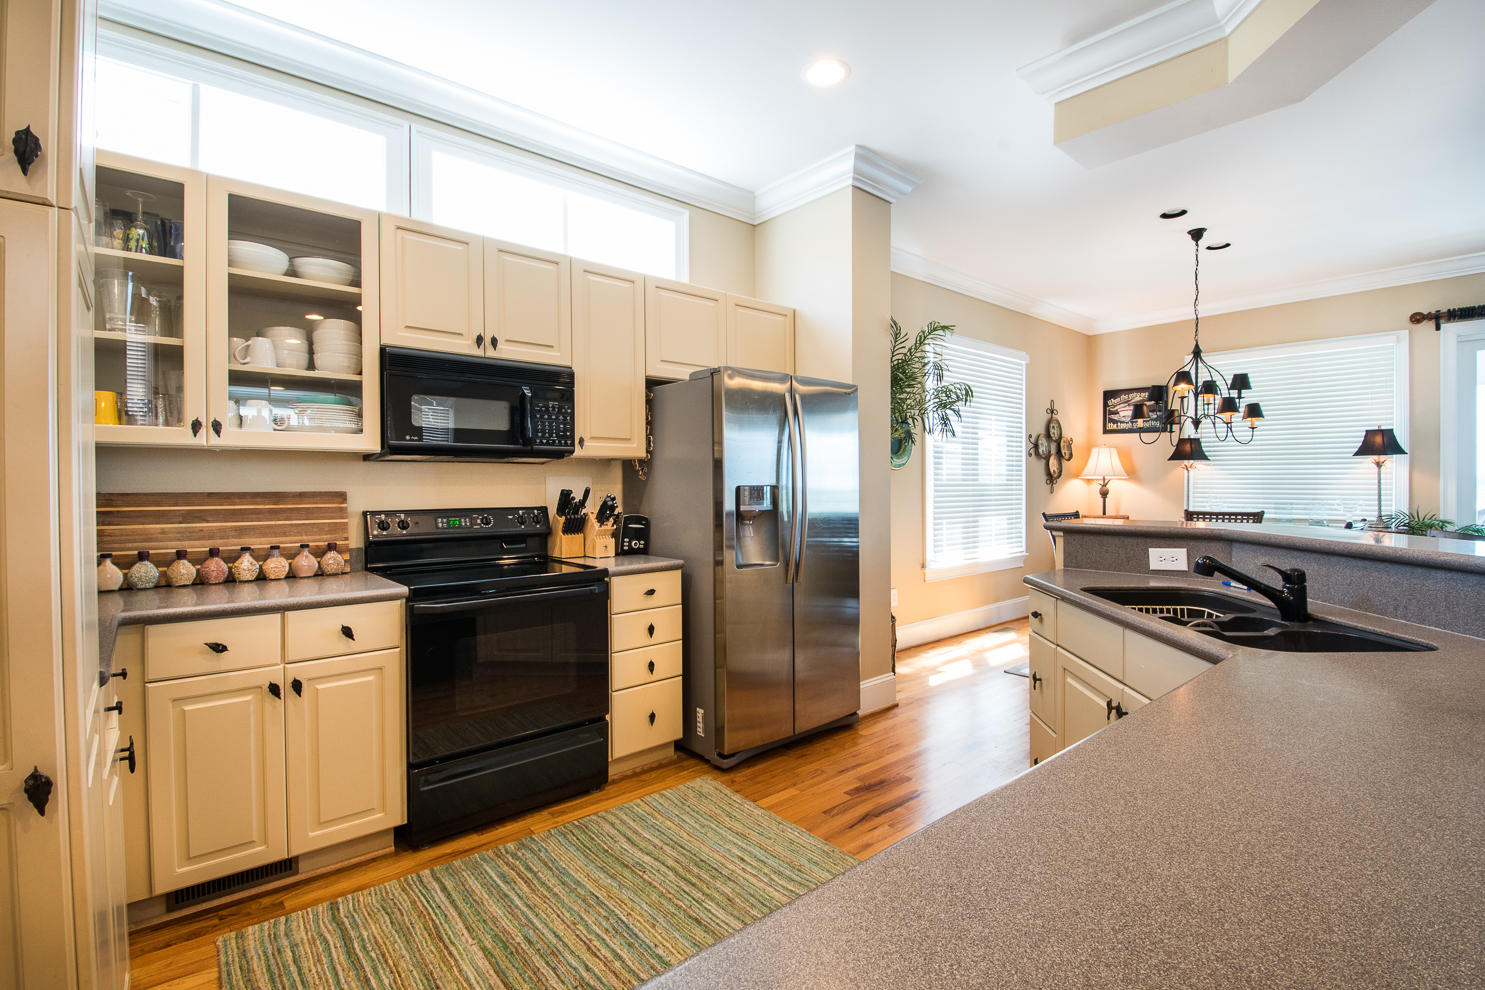 Tolers Cove Homes For Sale - B-4 & B-5 Tolers Cove Marina 70ft + Home, Mount Pleasant, SC - 35